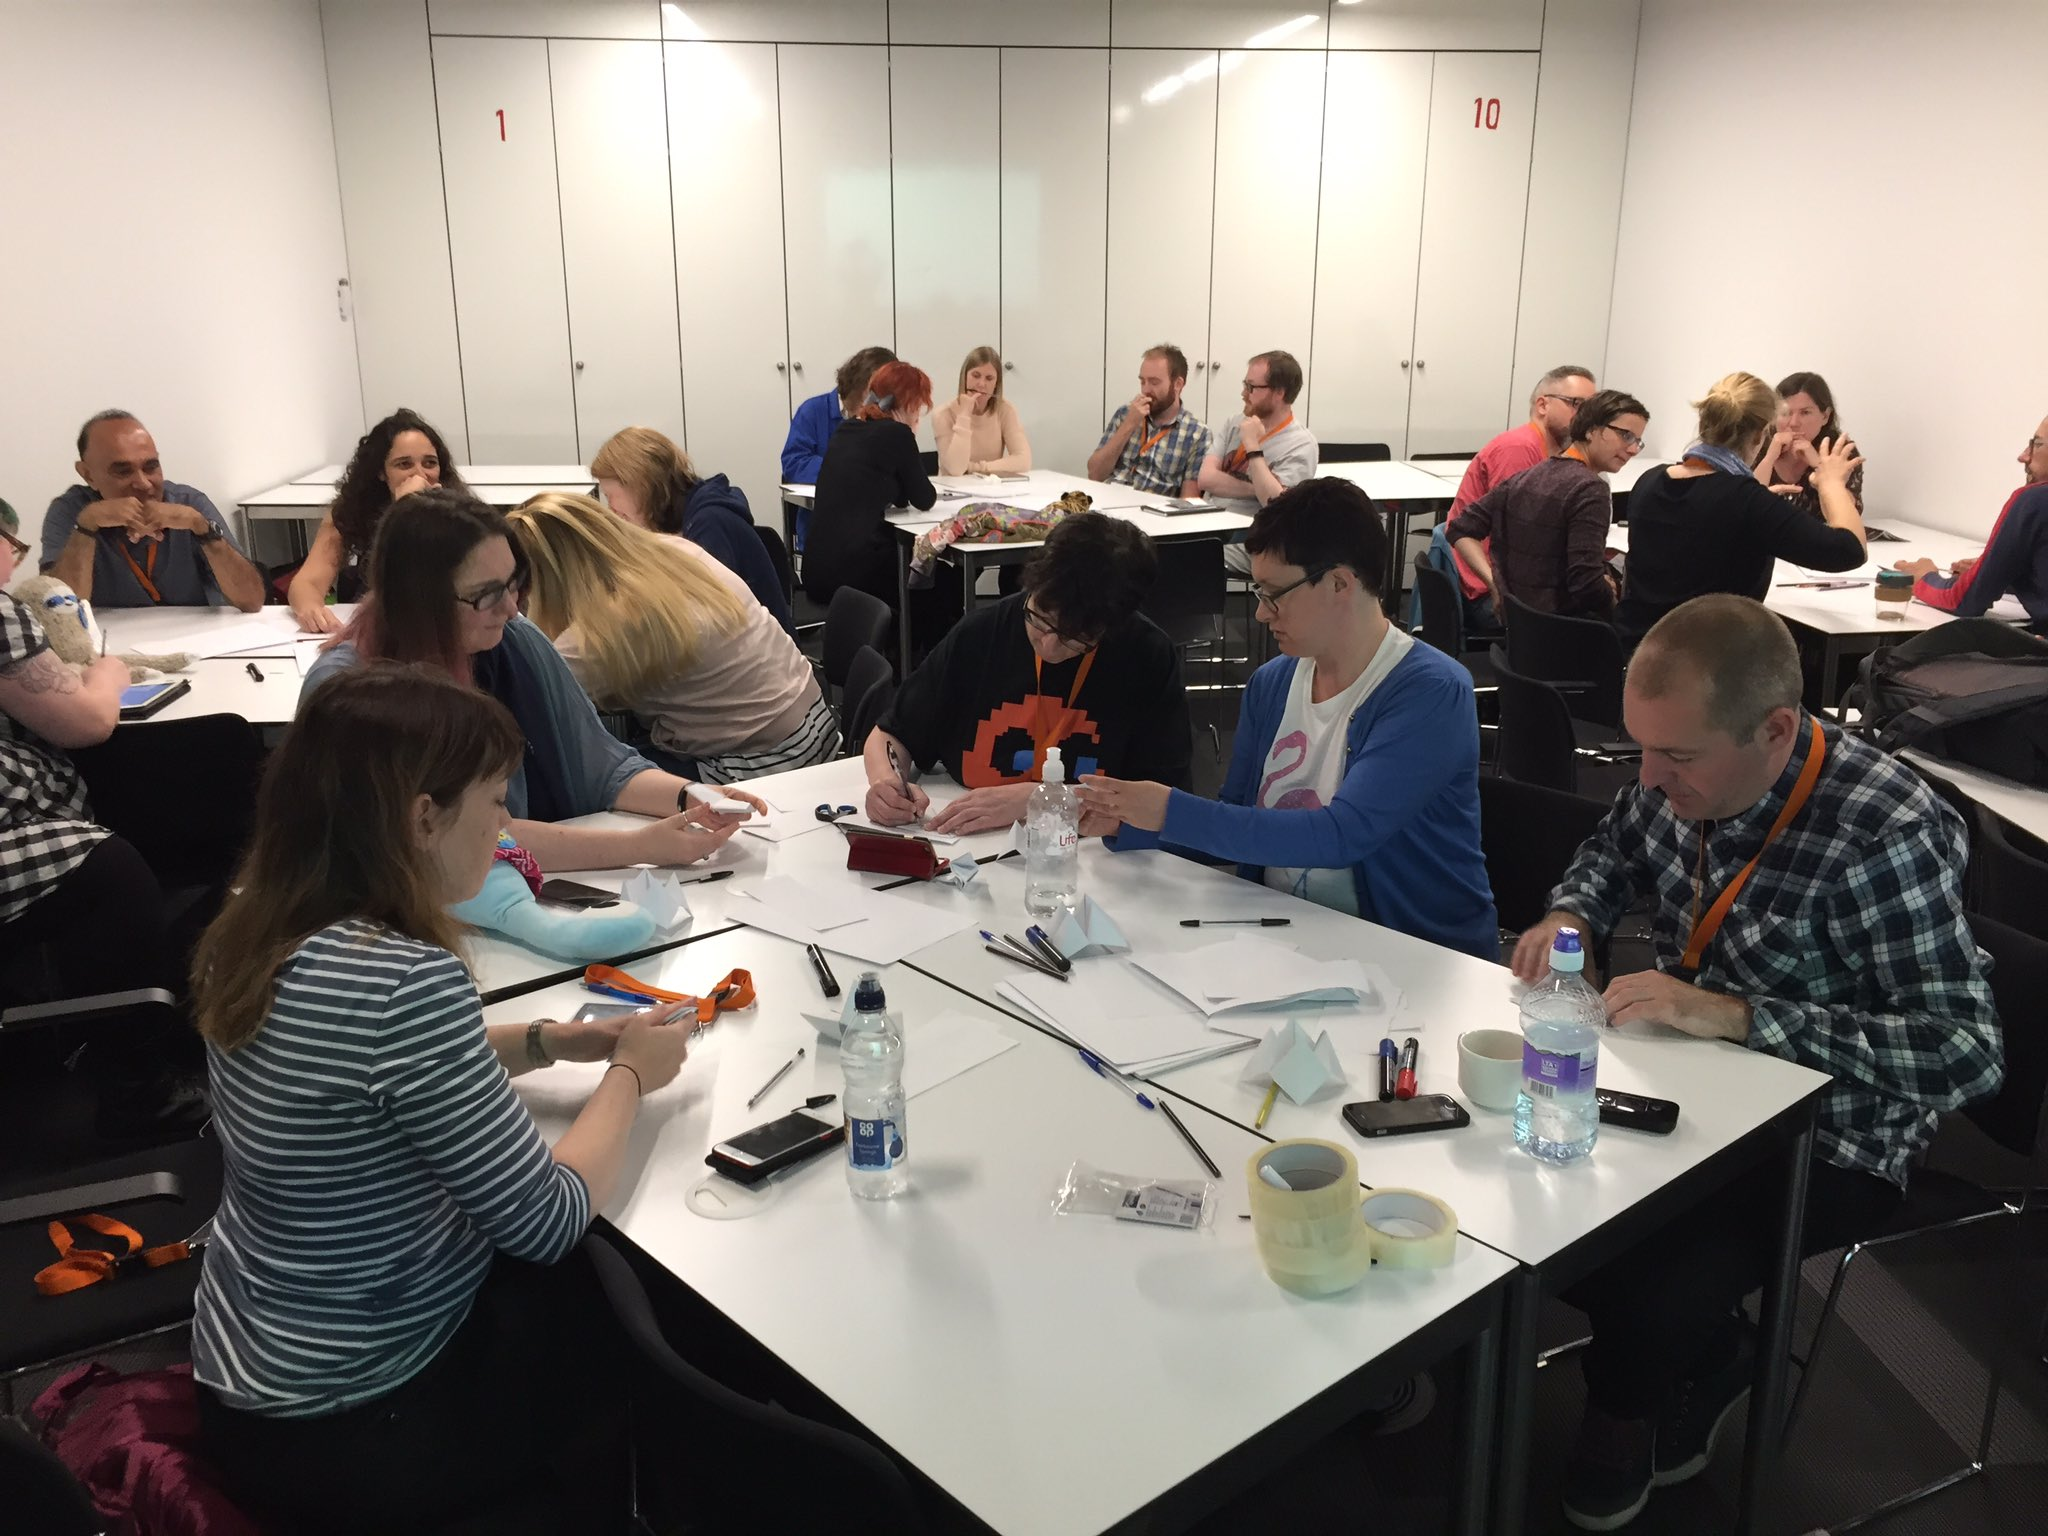 Meta moment when #playlearn17 delegates are designing their own evaluation methods https://t.co/UNvk2KkpAw